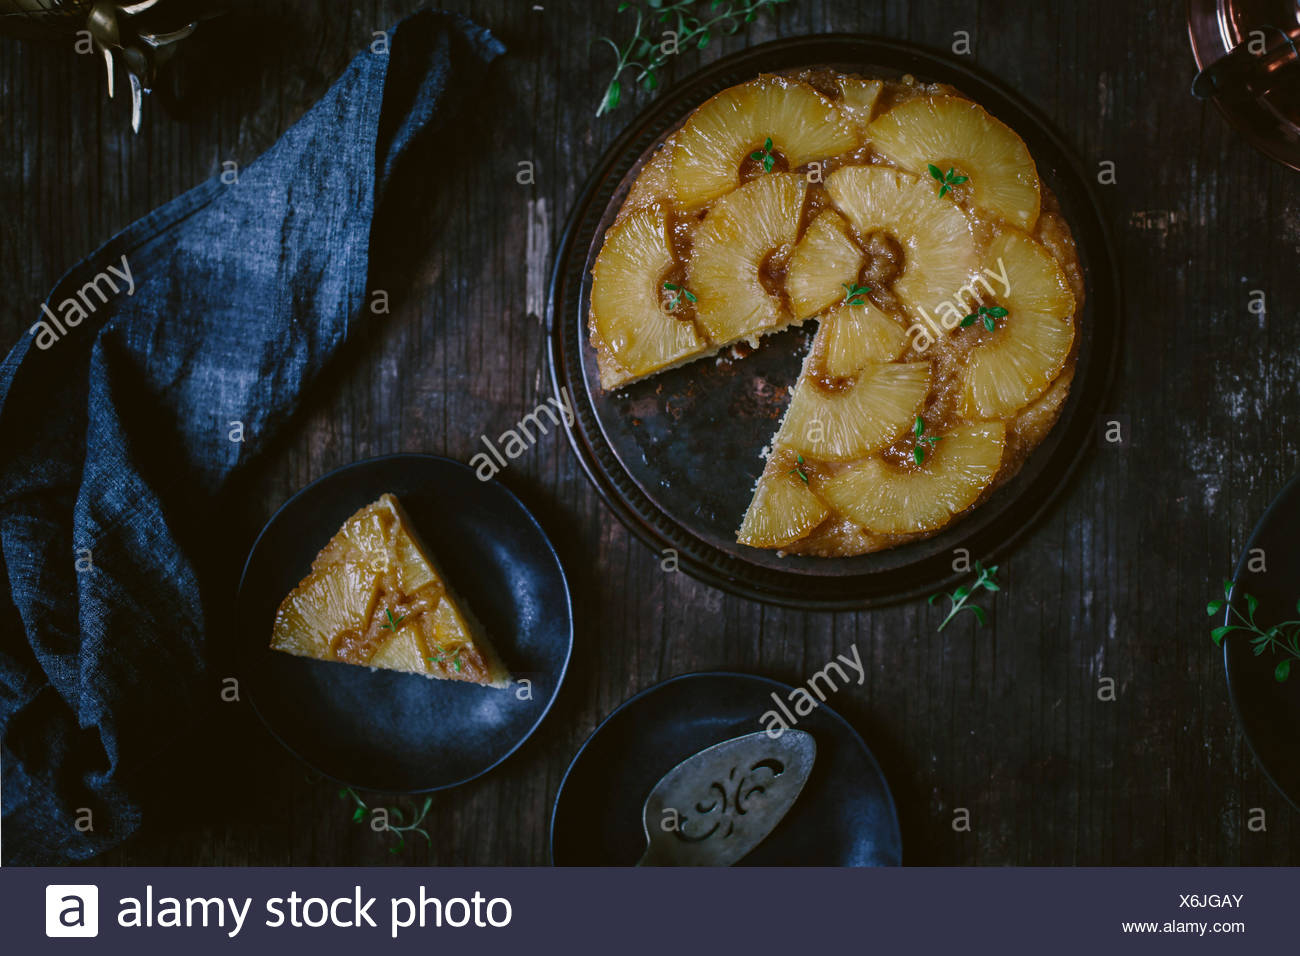 Dark food photography Pineapple Upside Down Cake Upside Down cake cake dessert nobody top view vintage - Stock Image